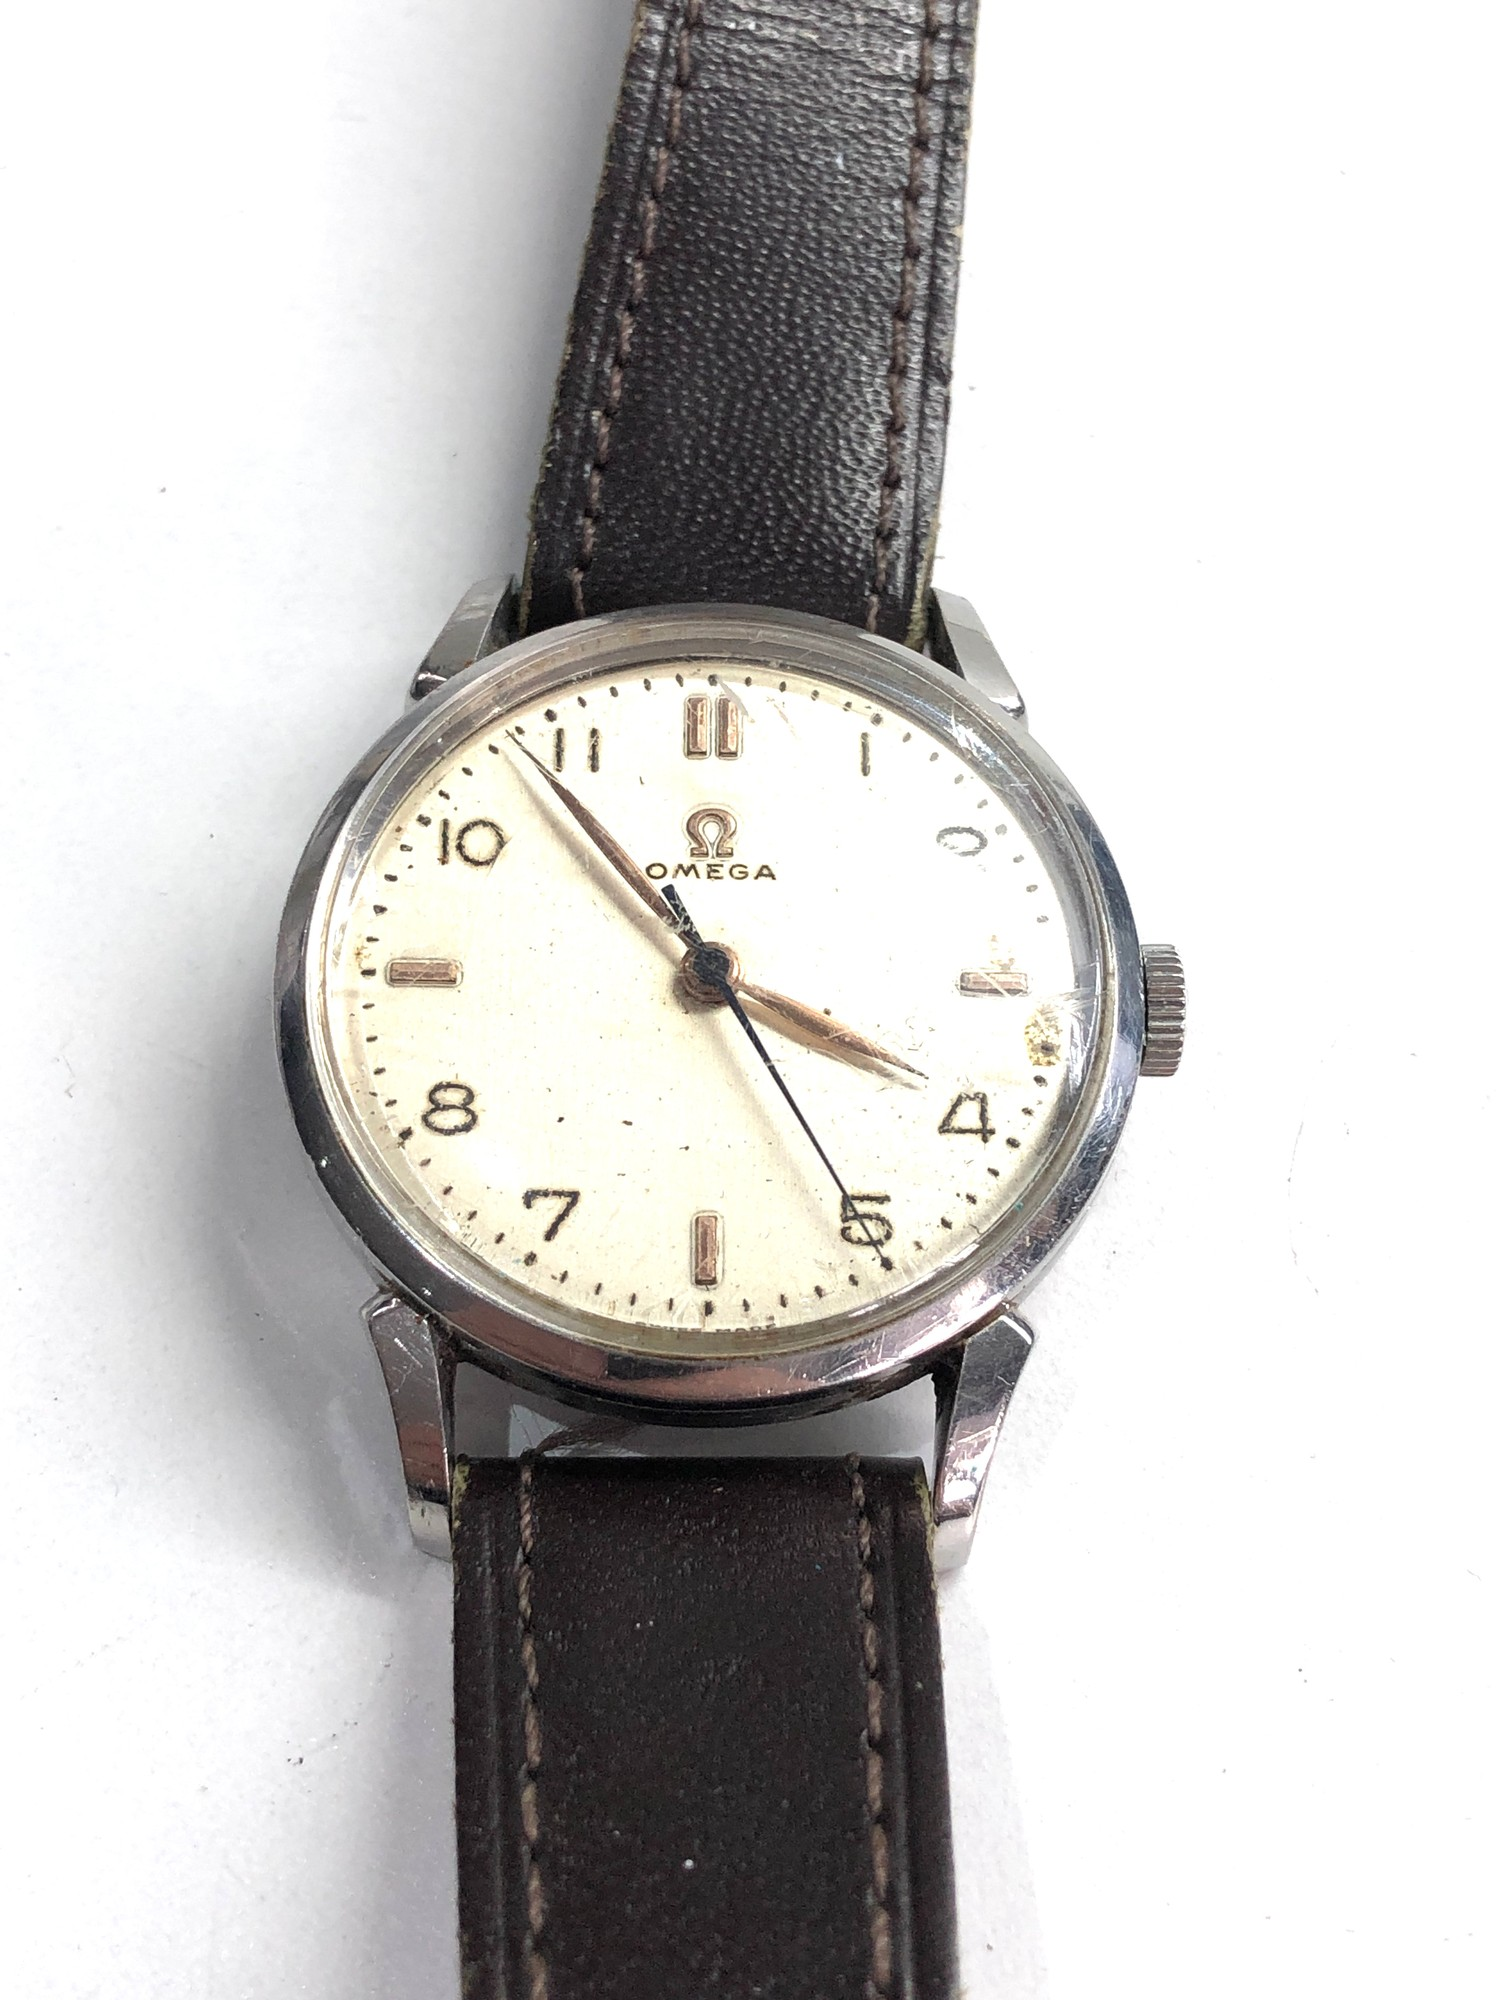 Vintage gents omega wristwatch hand wind in working order but no warranty given